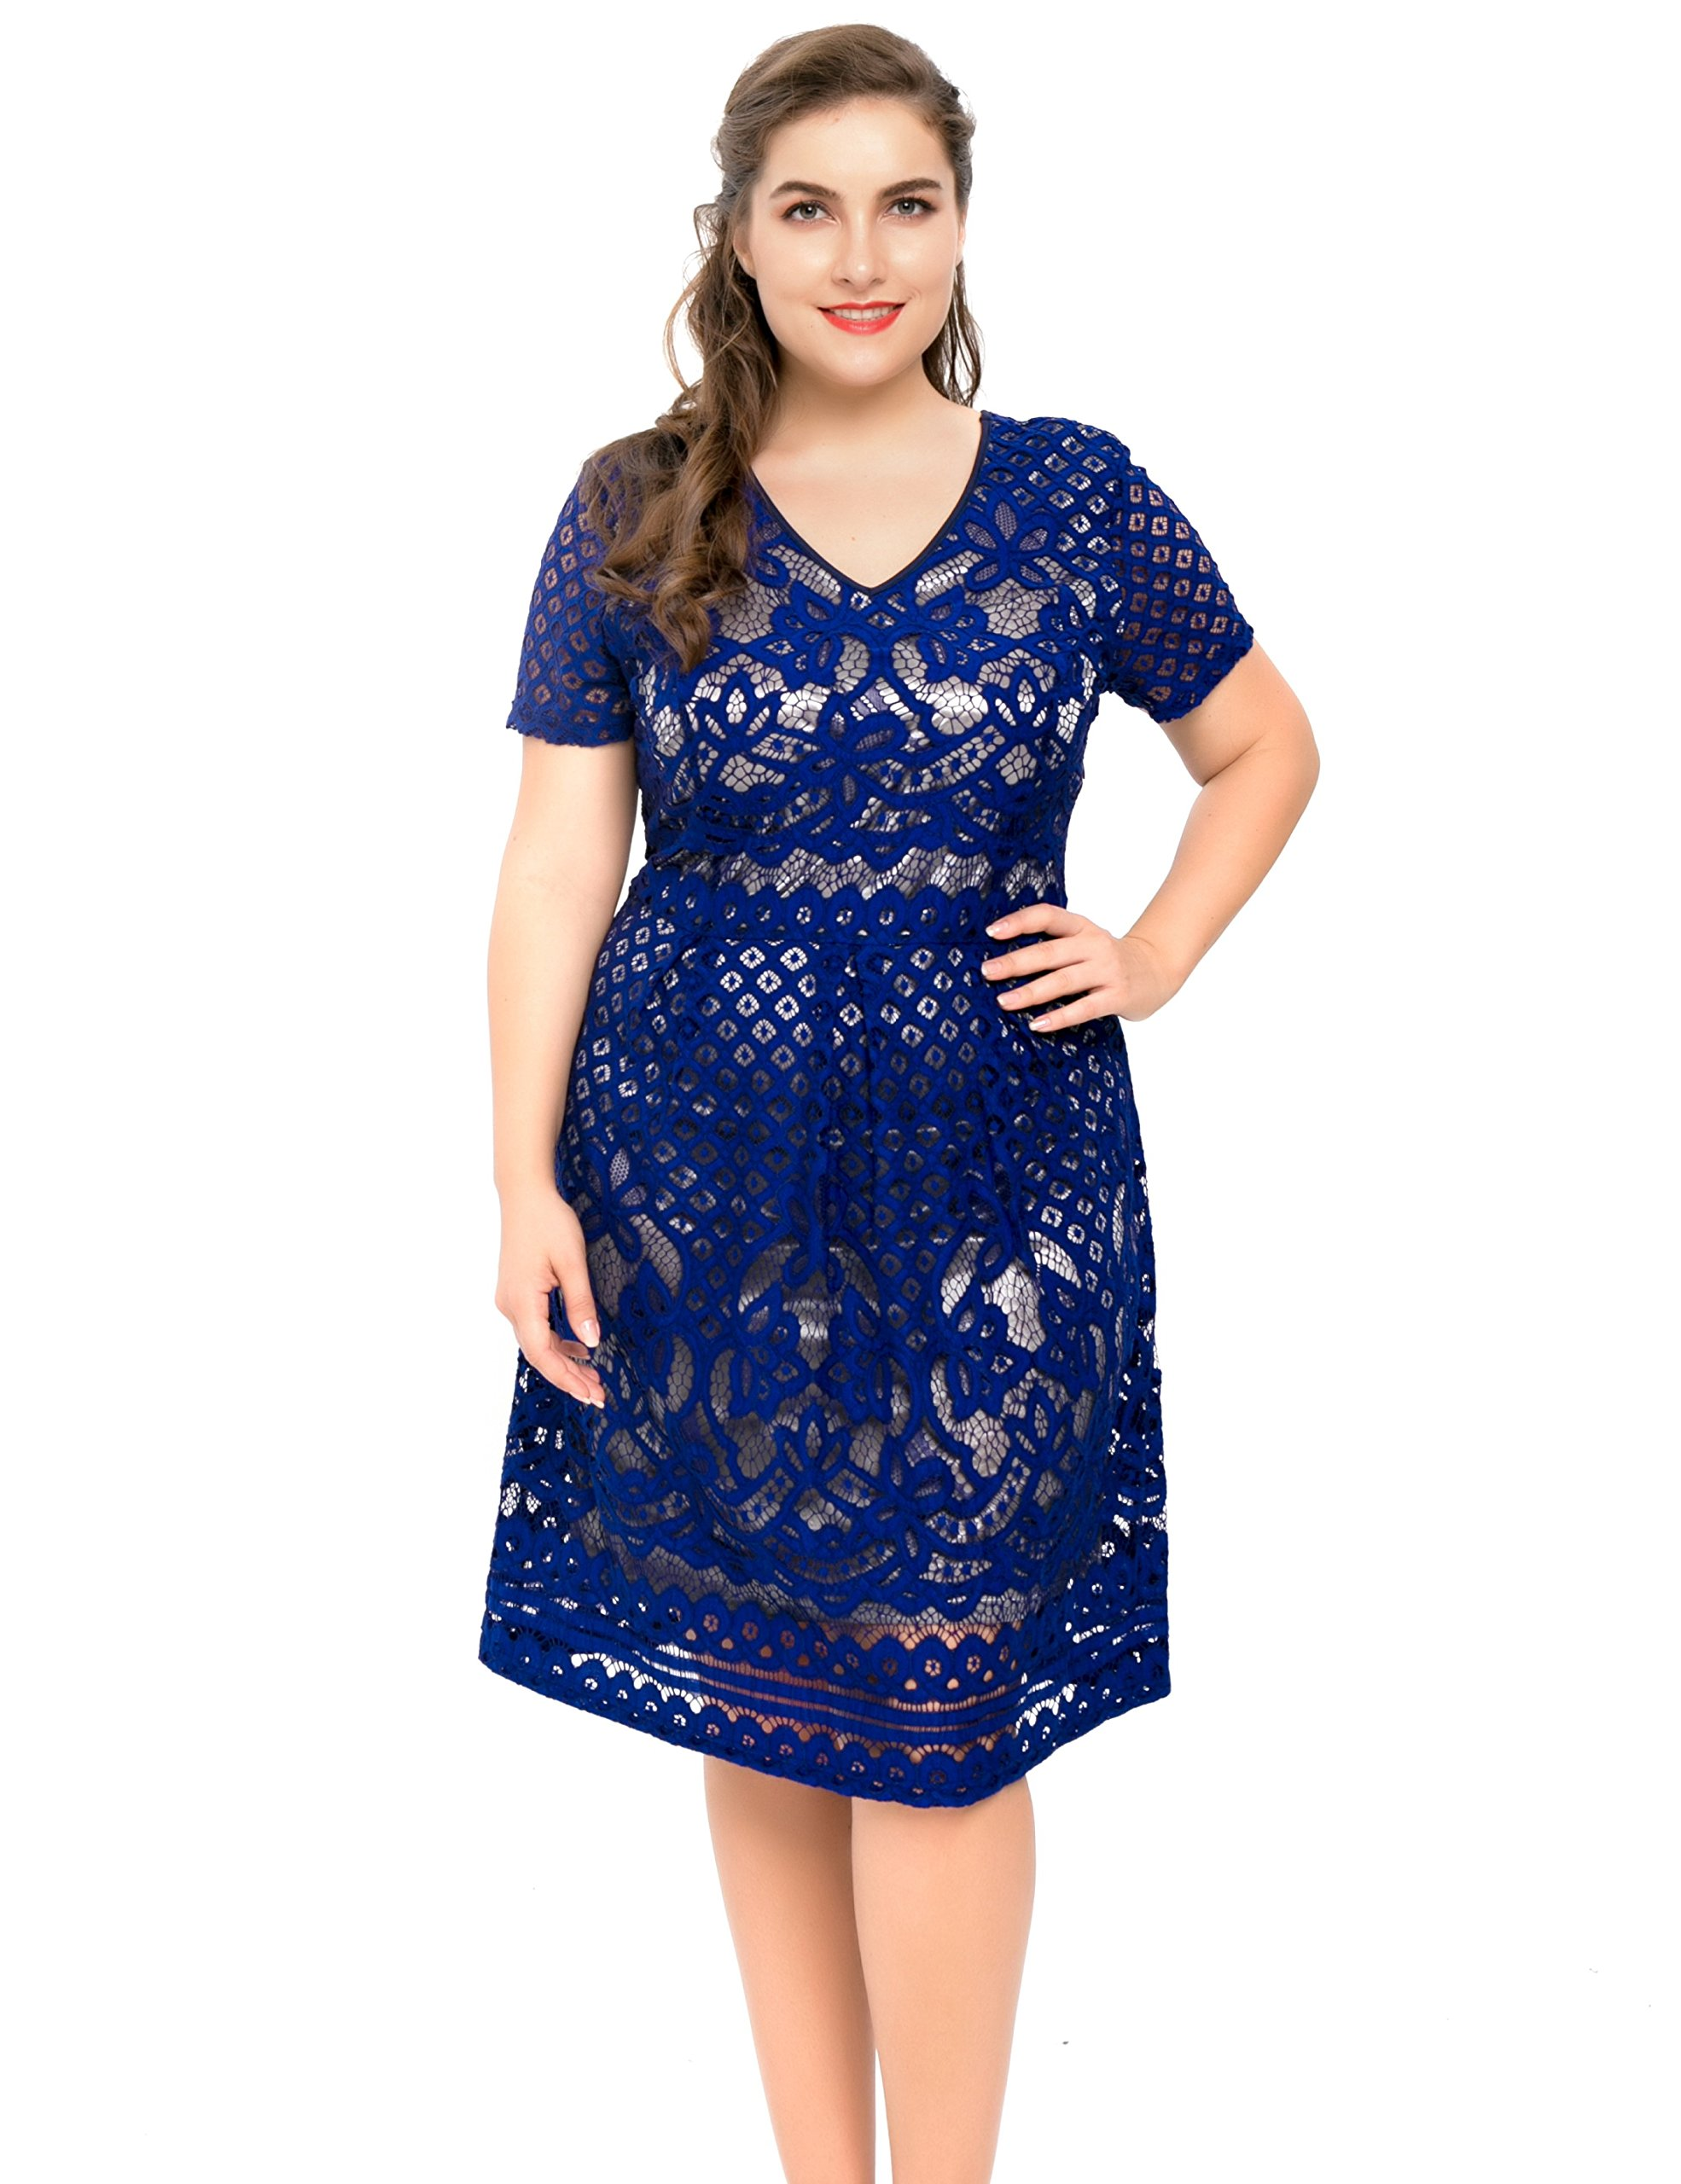 Chicwe Women's Plus Size Lined Floral Lace Skater Dress - Knee Length Casual Party Cocktail Dress 1X